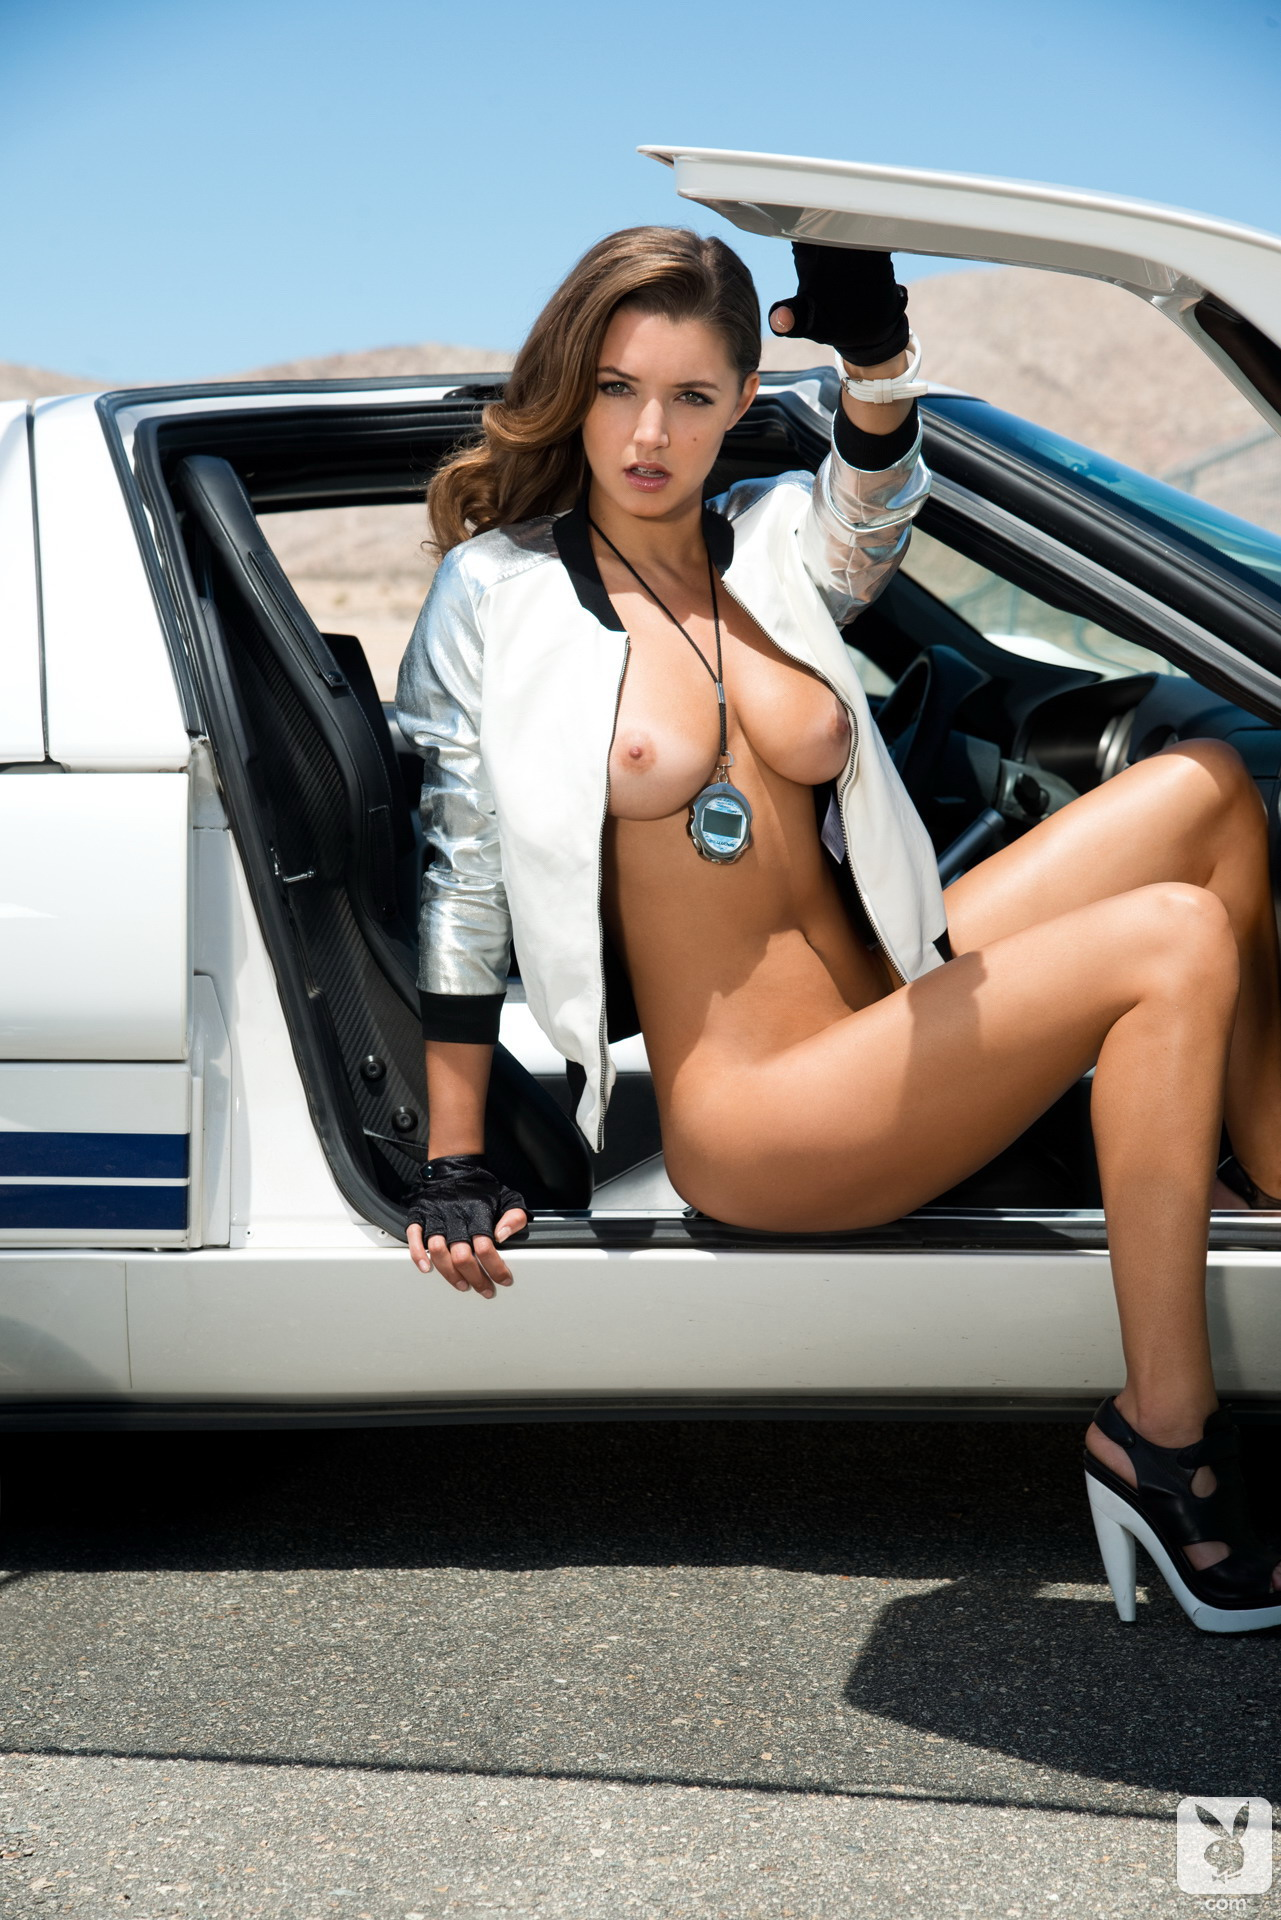 Hot babe in camaro sees my dick 3